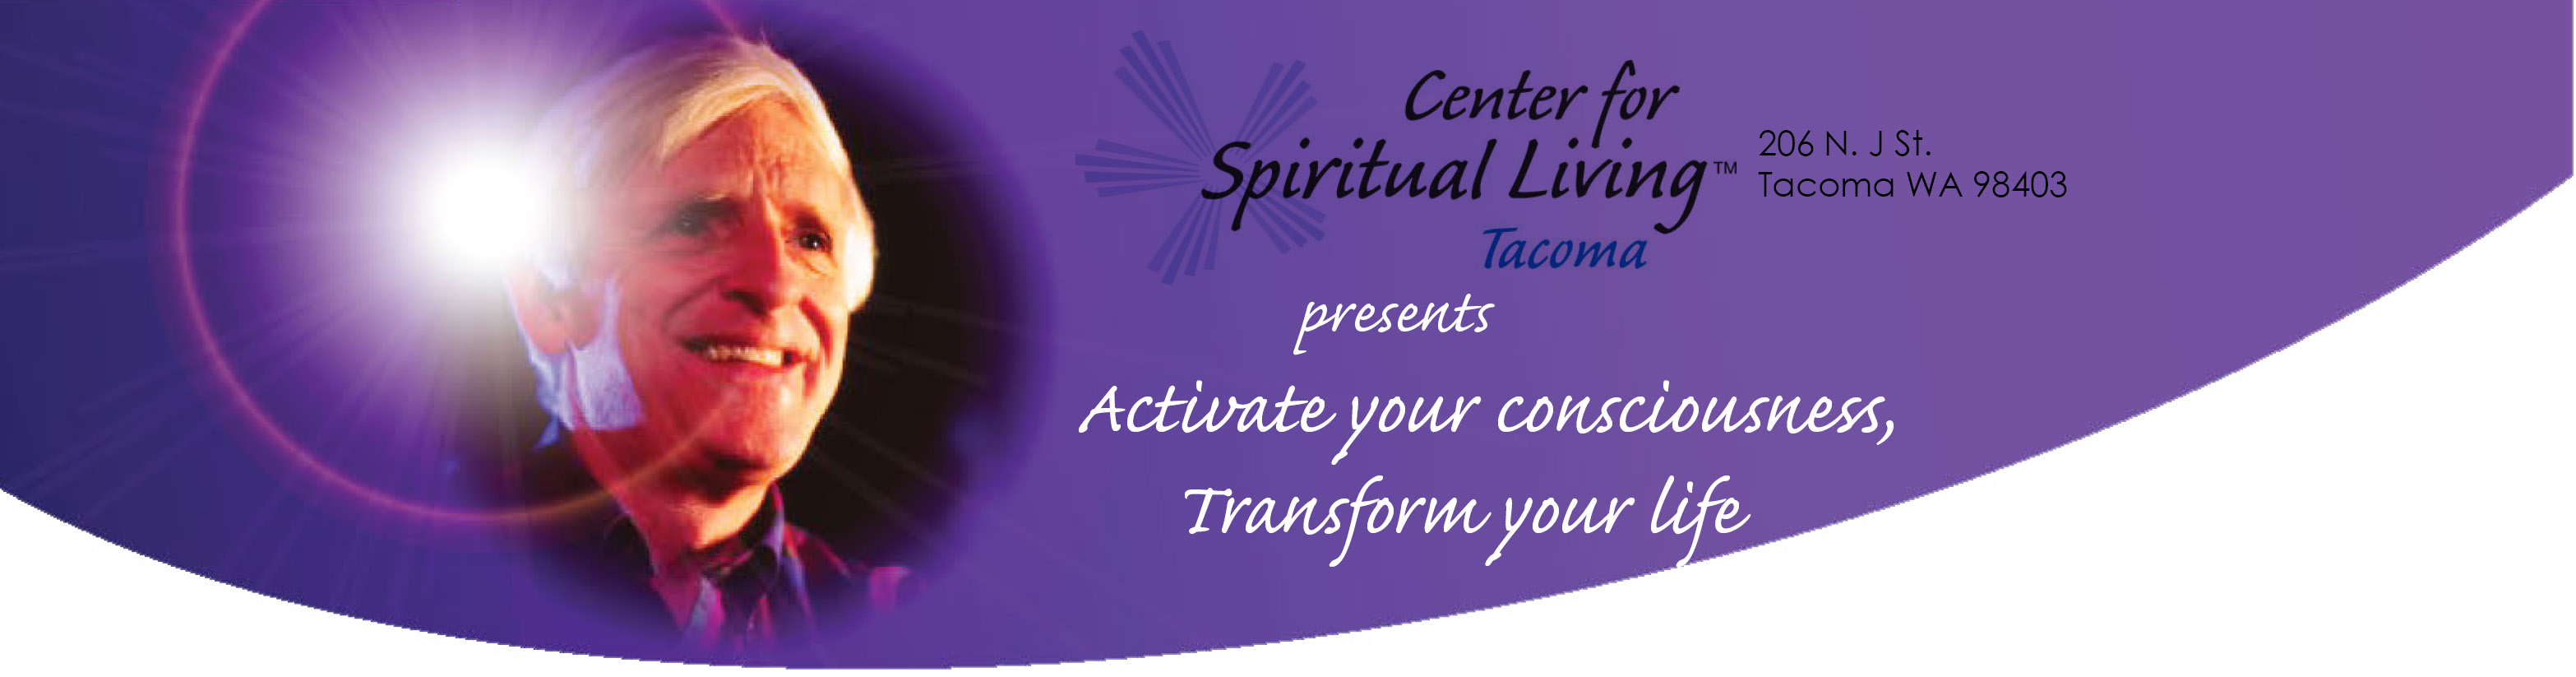 Center for Spiritual Living Tacoma presents: Activate your consciousness, Transform your life